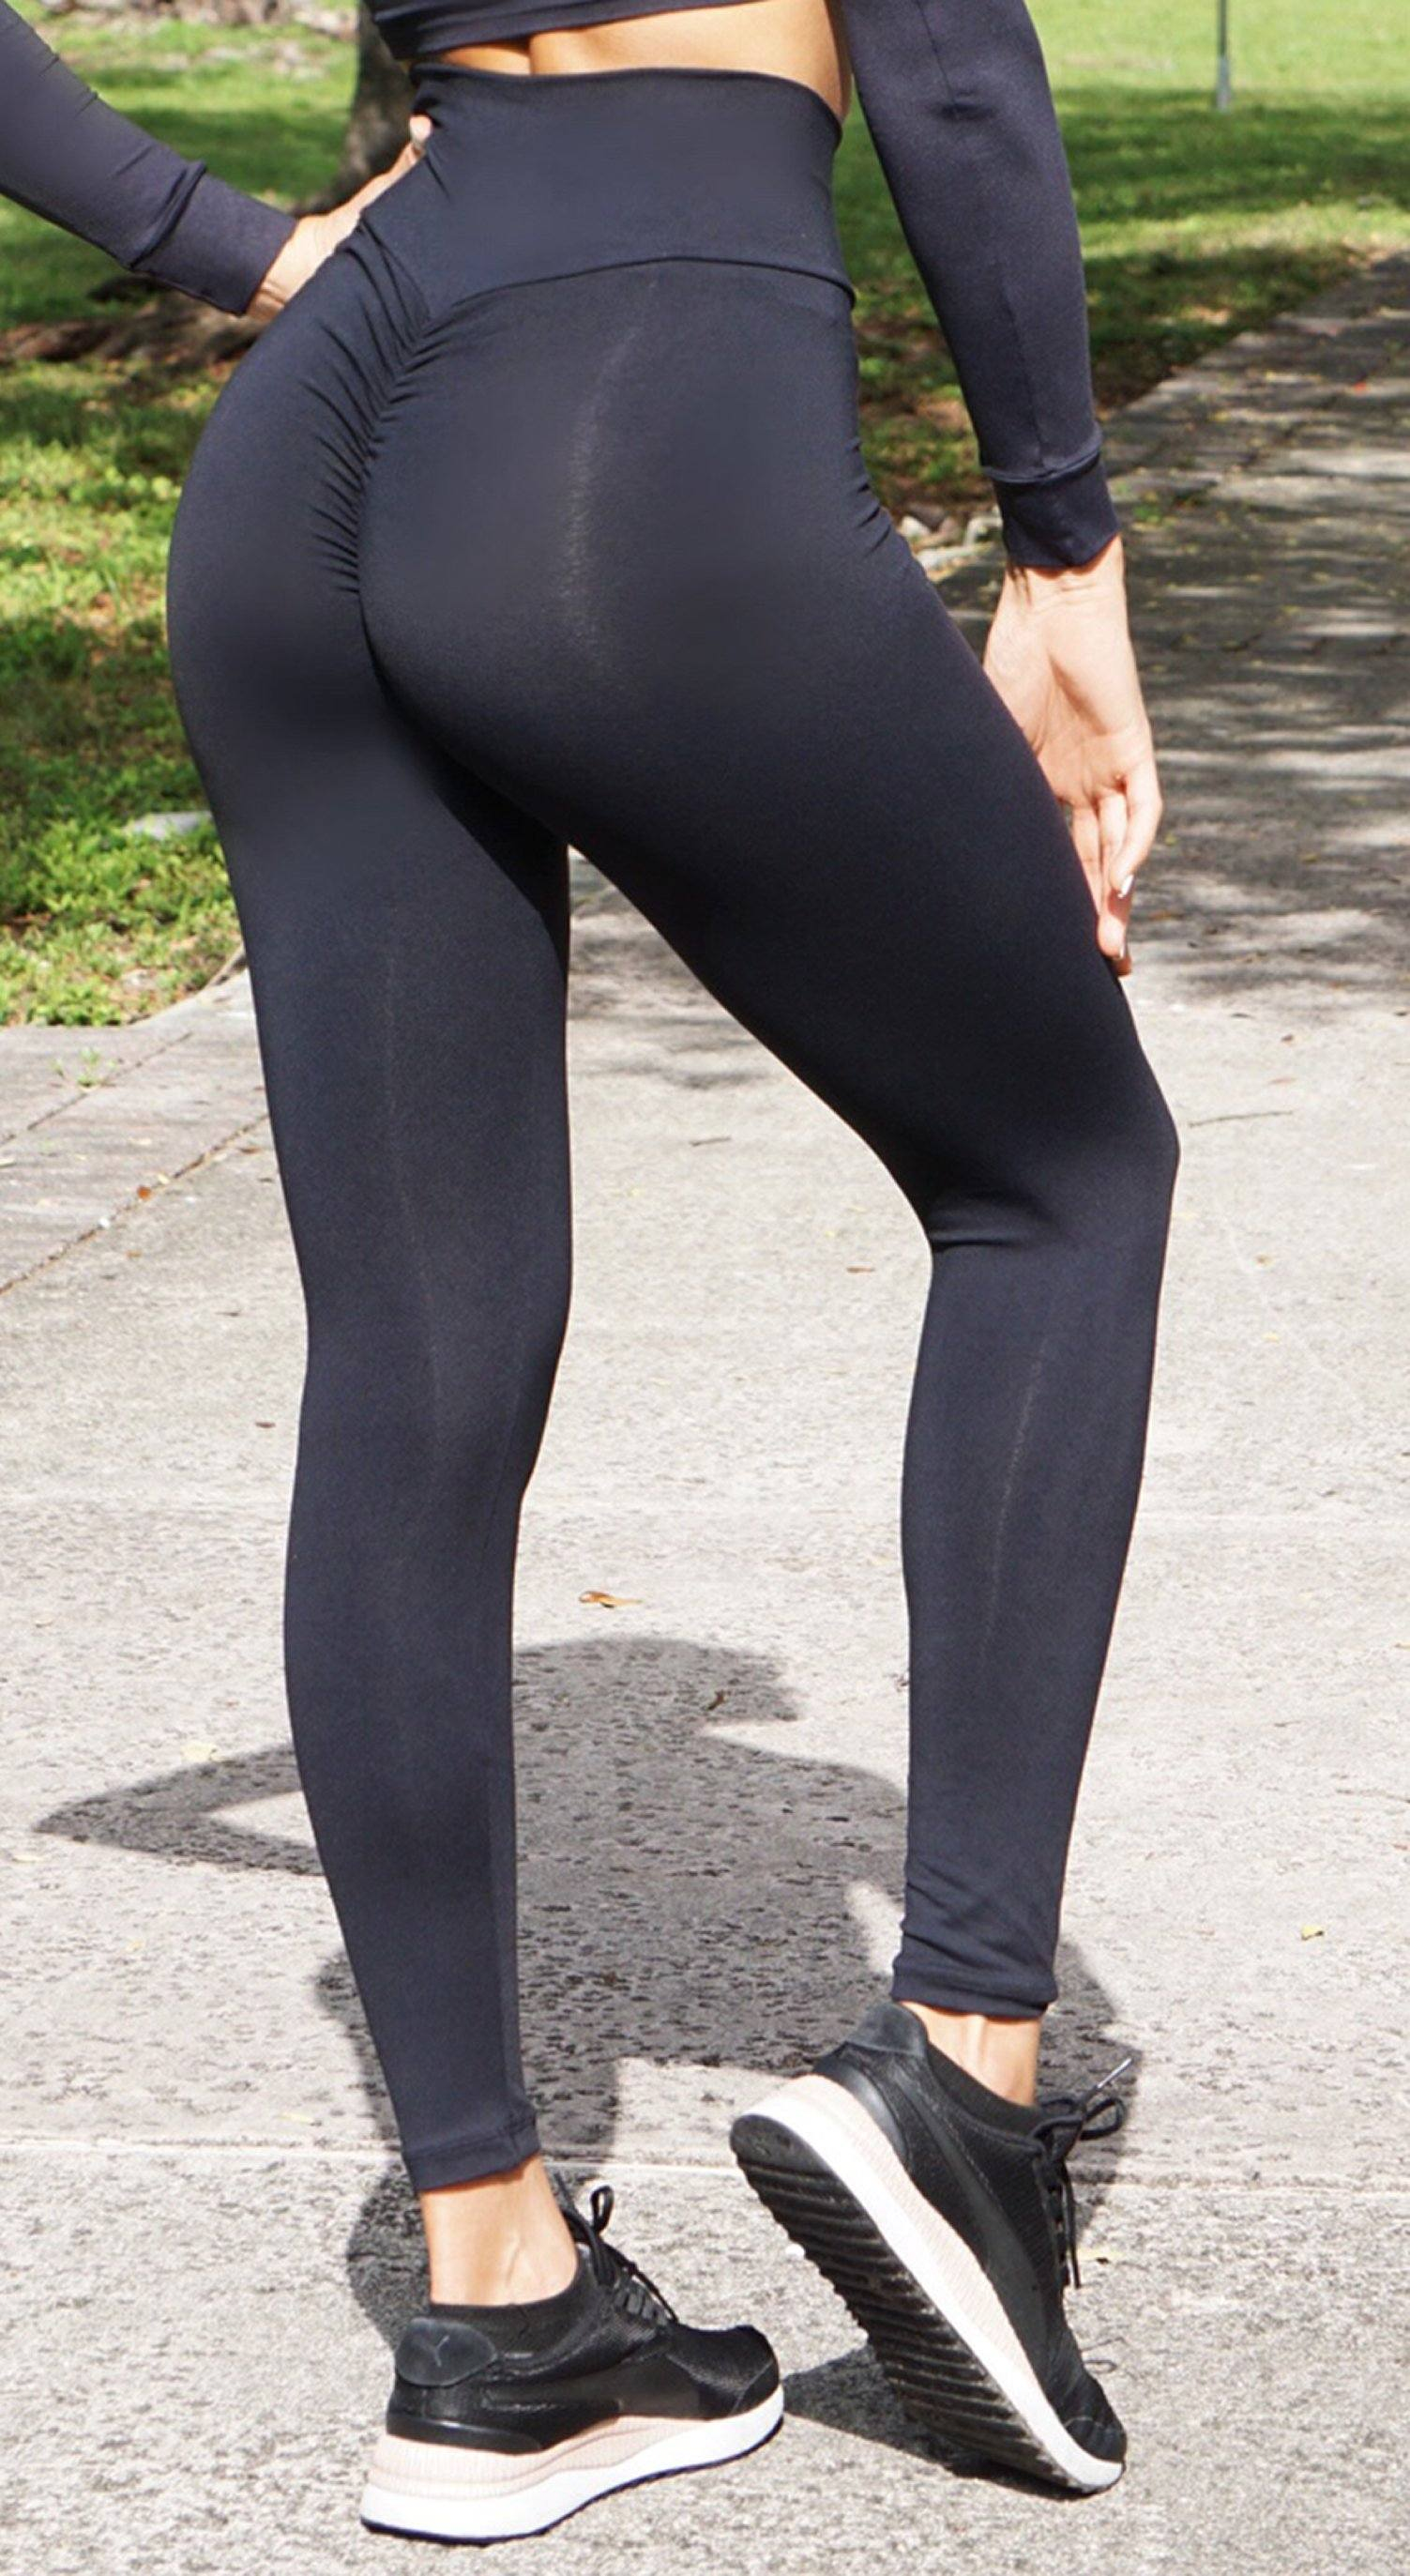 Brazilian Workout Legging - High Waist Scrunch Booty Cut V Black